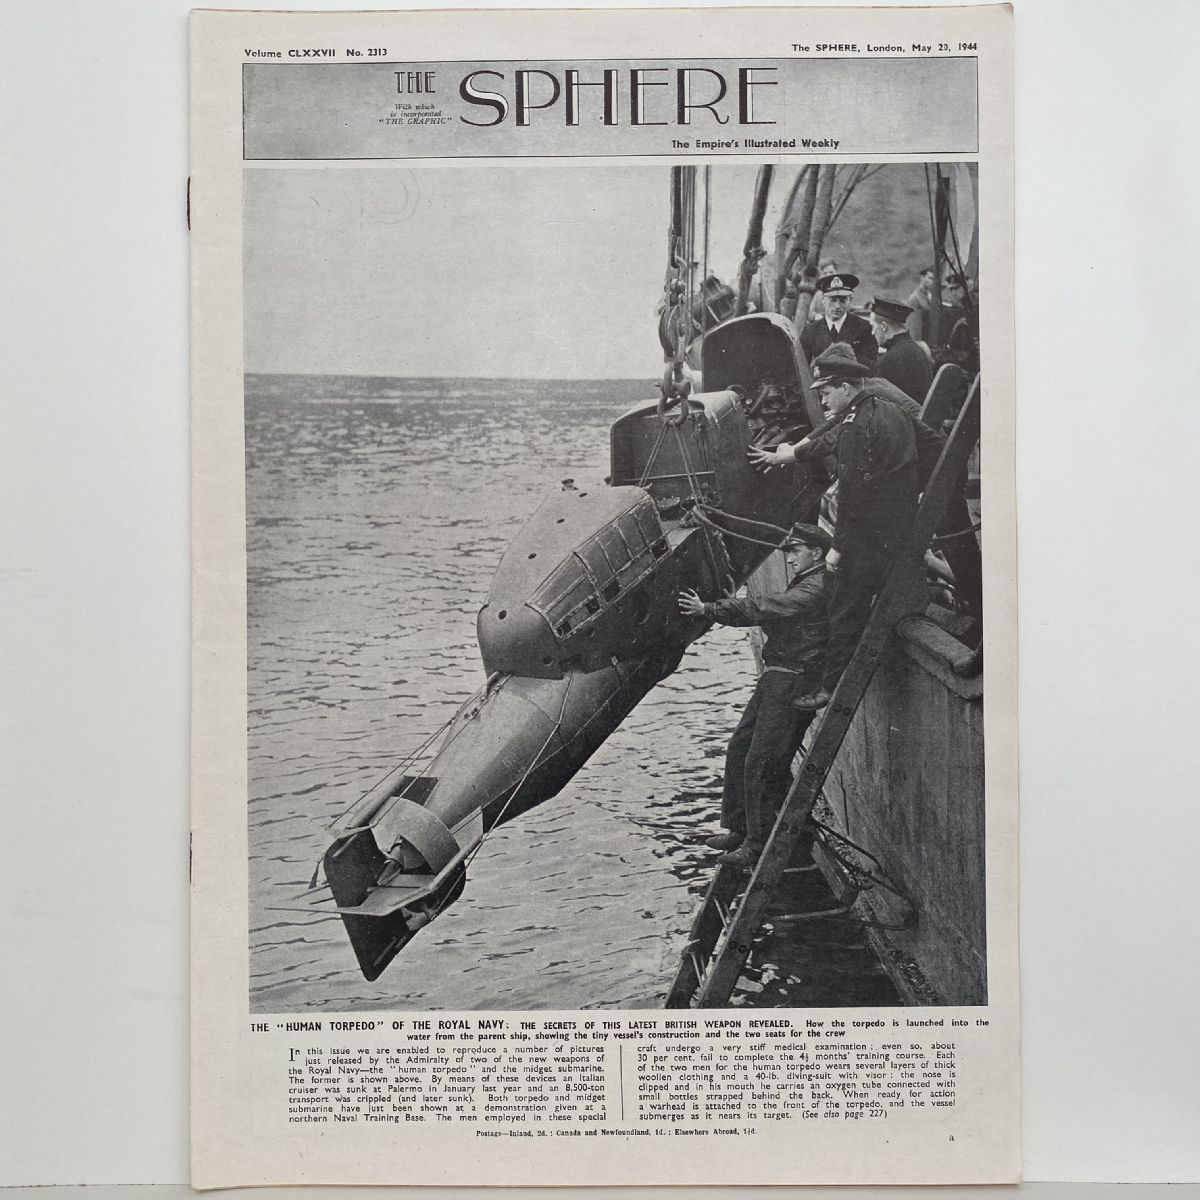 THE SPHERE The Empire's Illustrated Weekly. May 20, 1944. No.2313